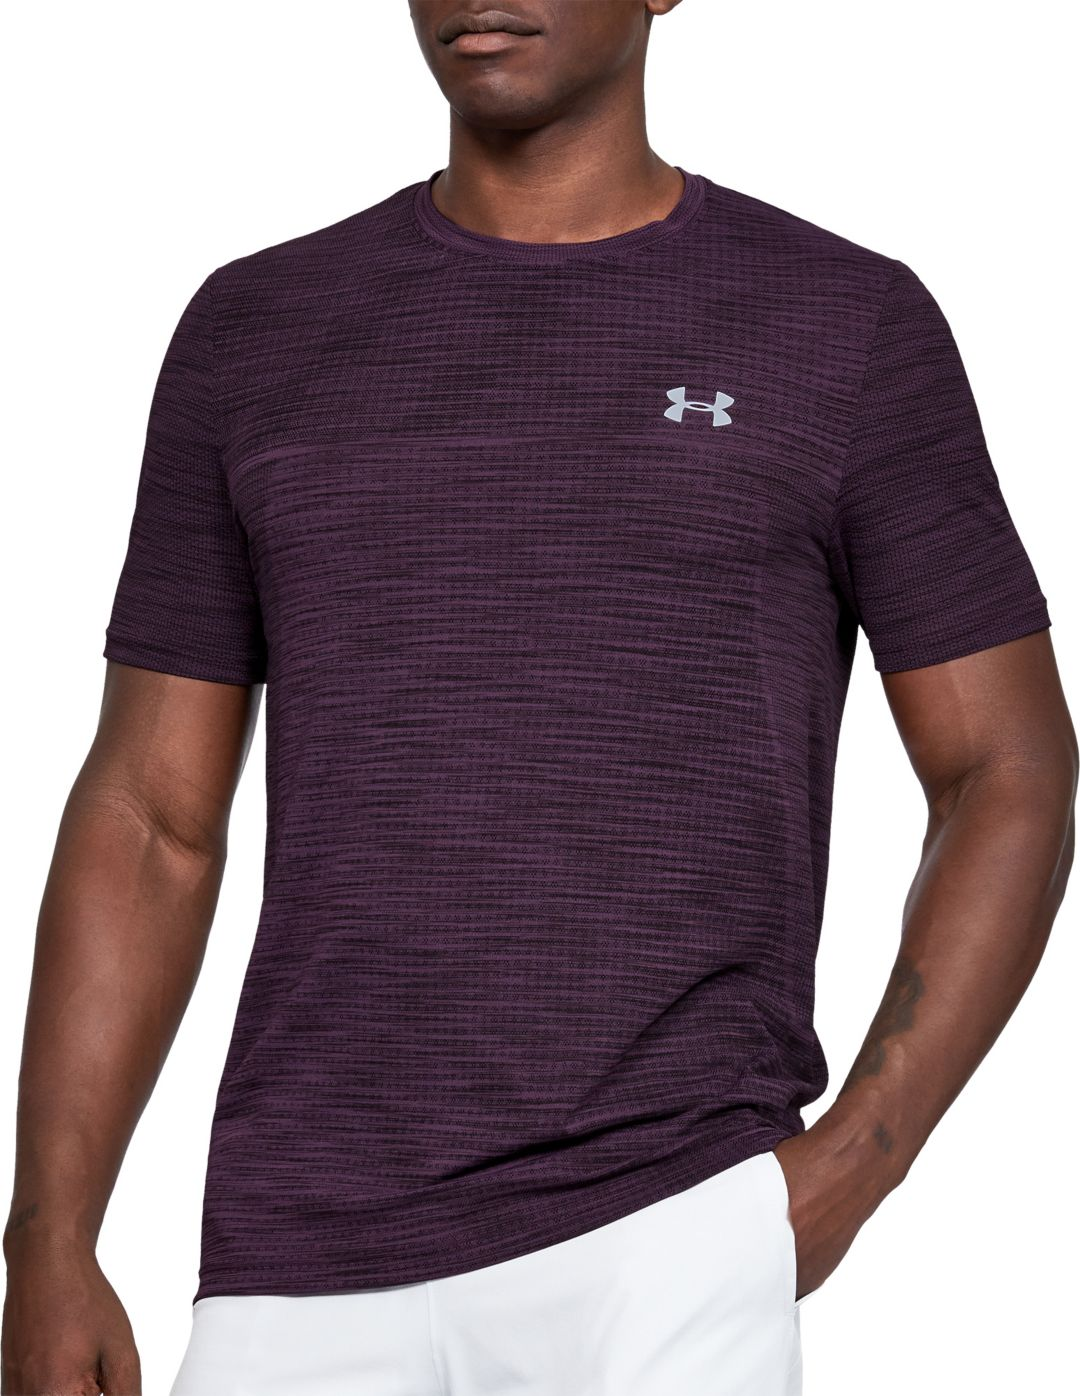 80d624f42 Under Armour Men's Vanish Seamless Novelty T-Shirt. noImageFound. Previous.  1